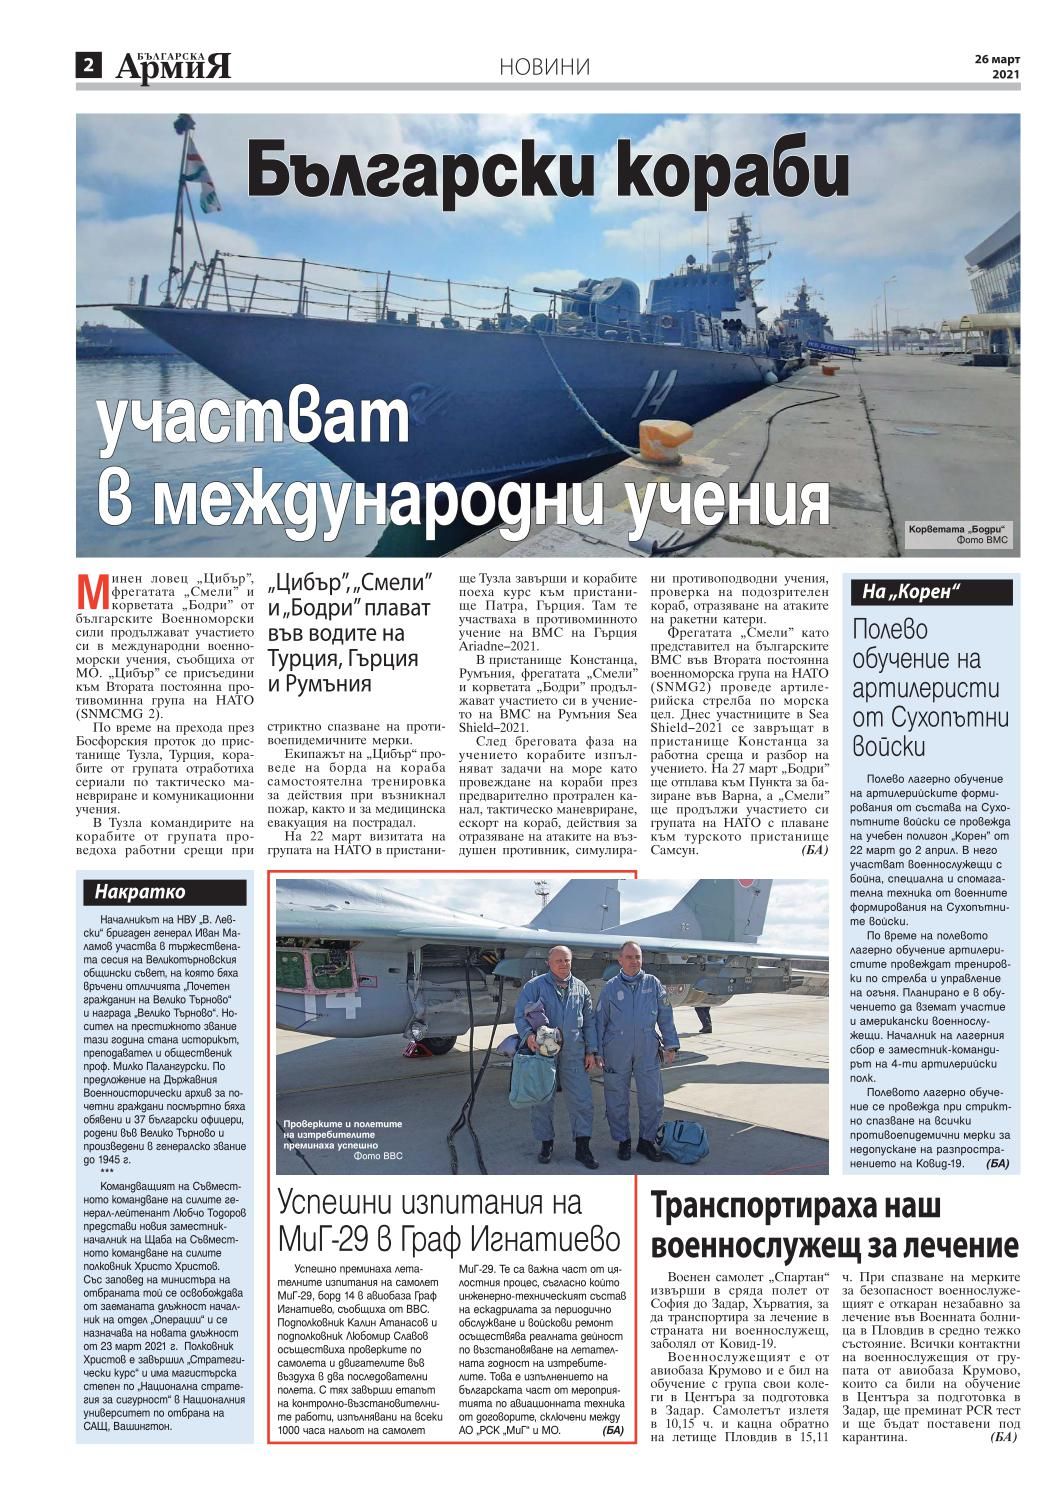 https://armymedia.bg/wp-content/uploads/2021/03/02.page1_-152.jpg